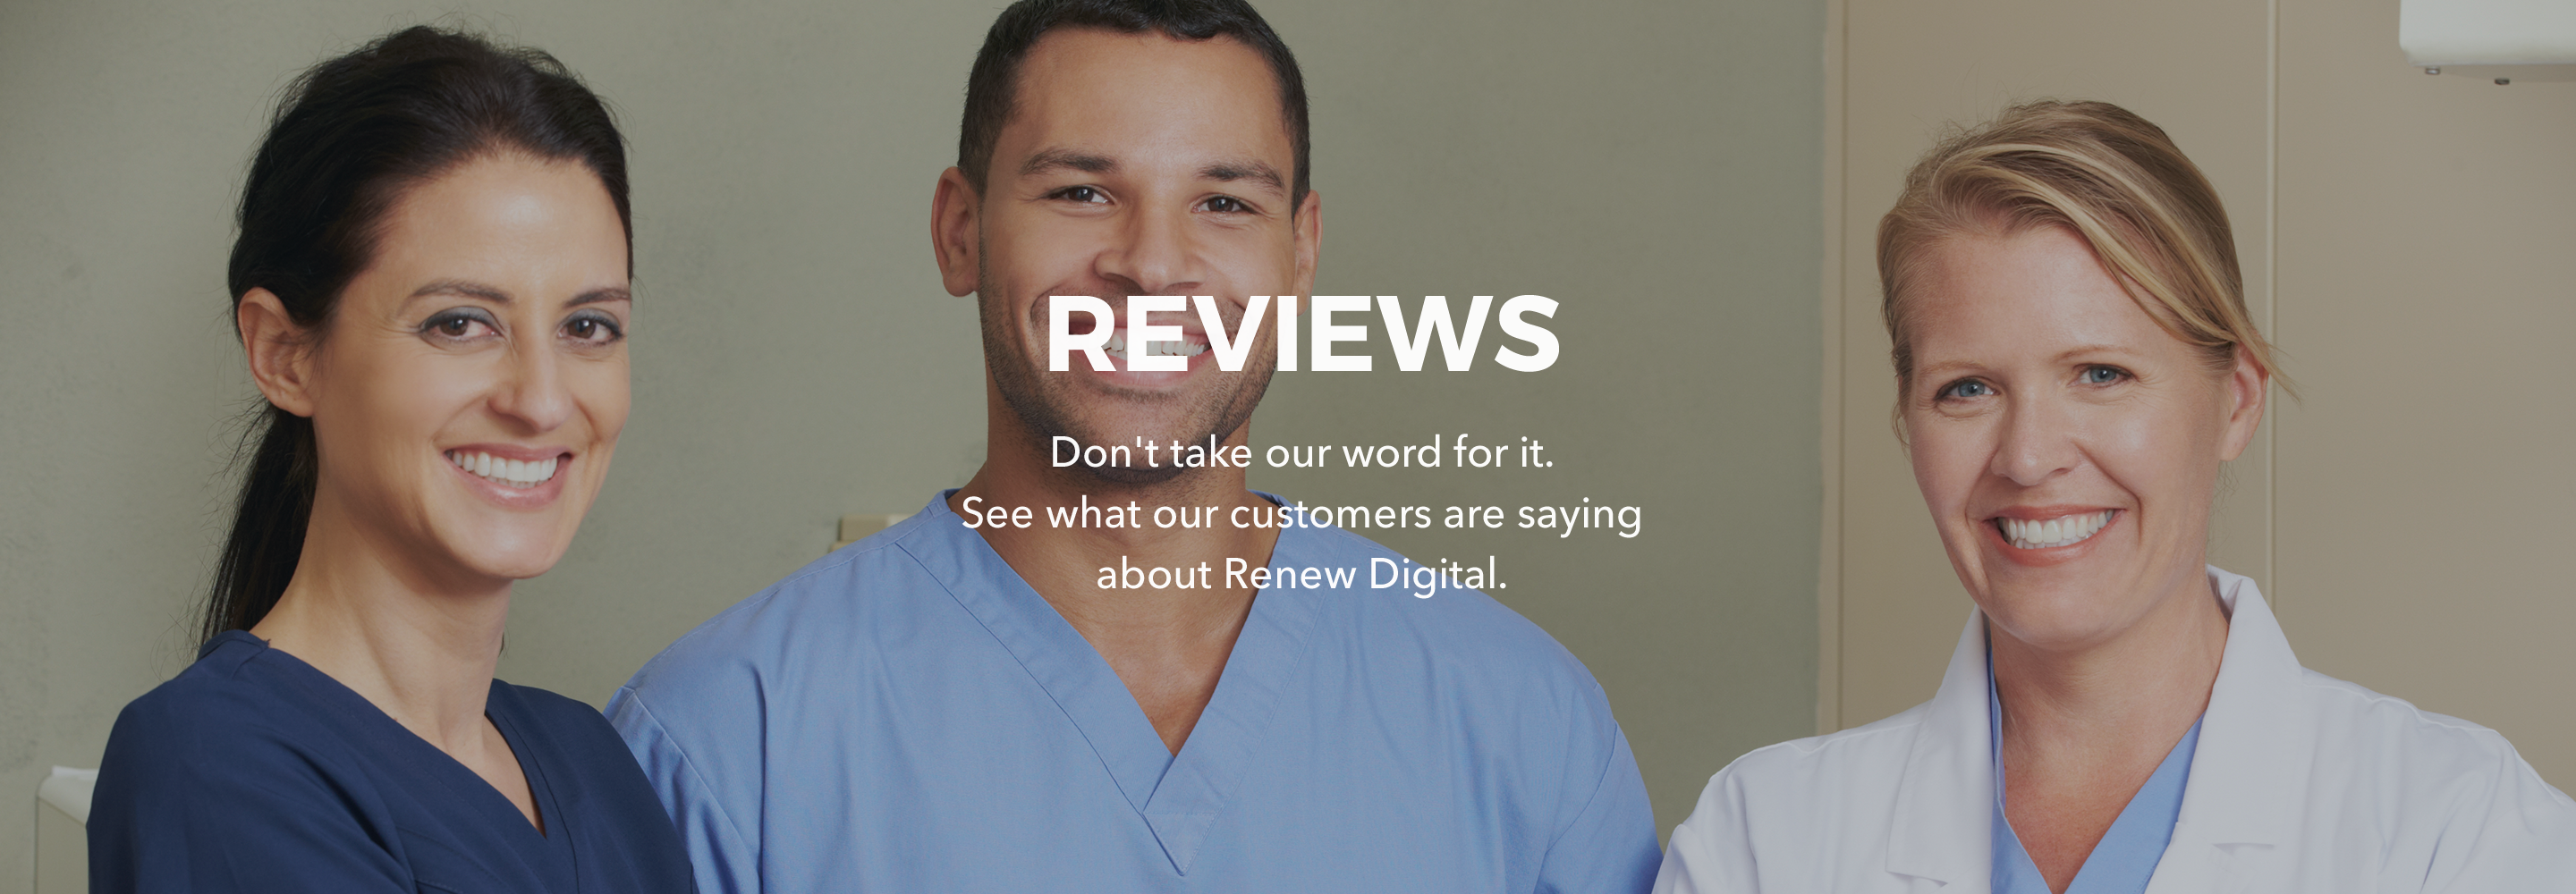 Renew Digital reviews | Professional Medical Supplier at 3250 Peachtree Corners Cir - Norcross GA